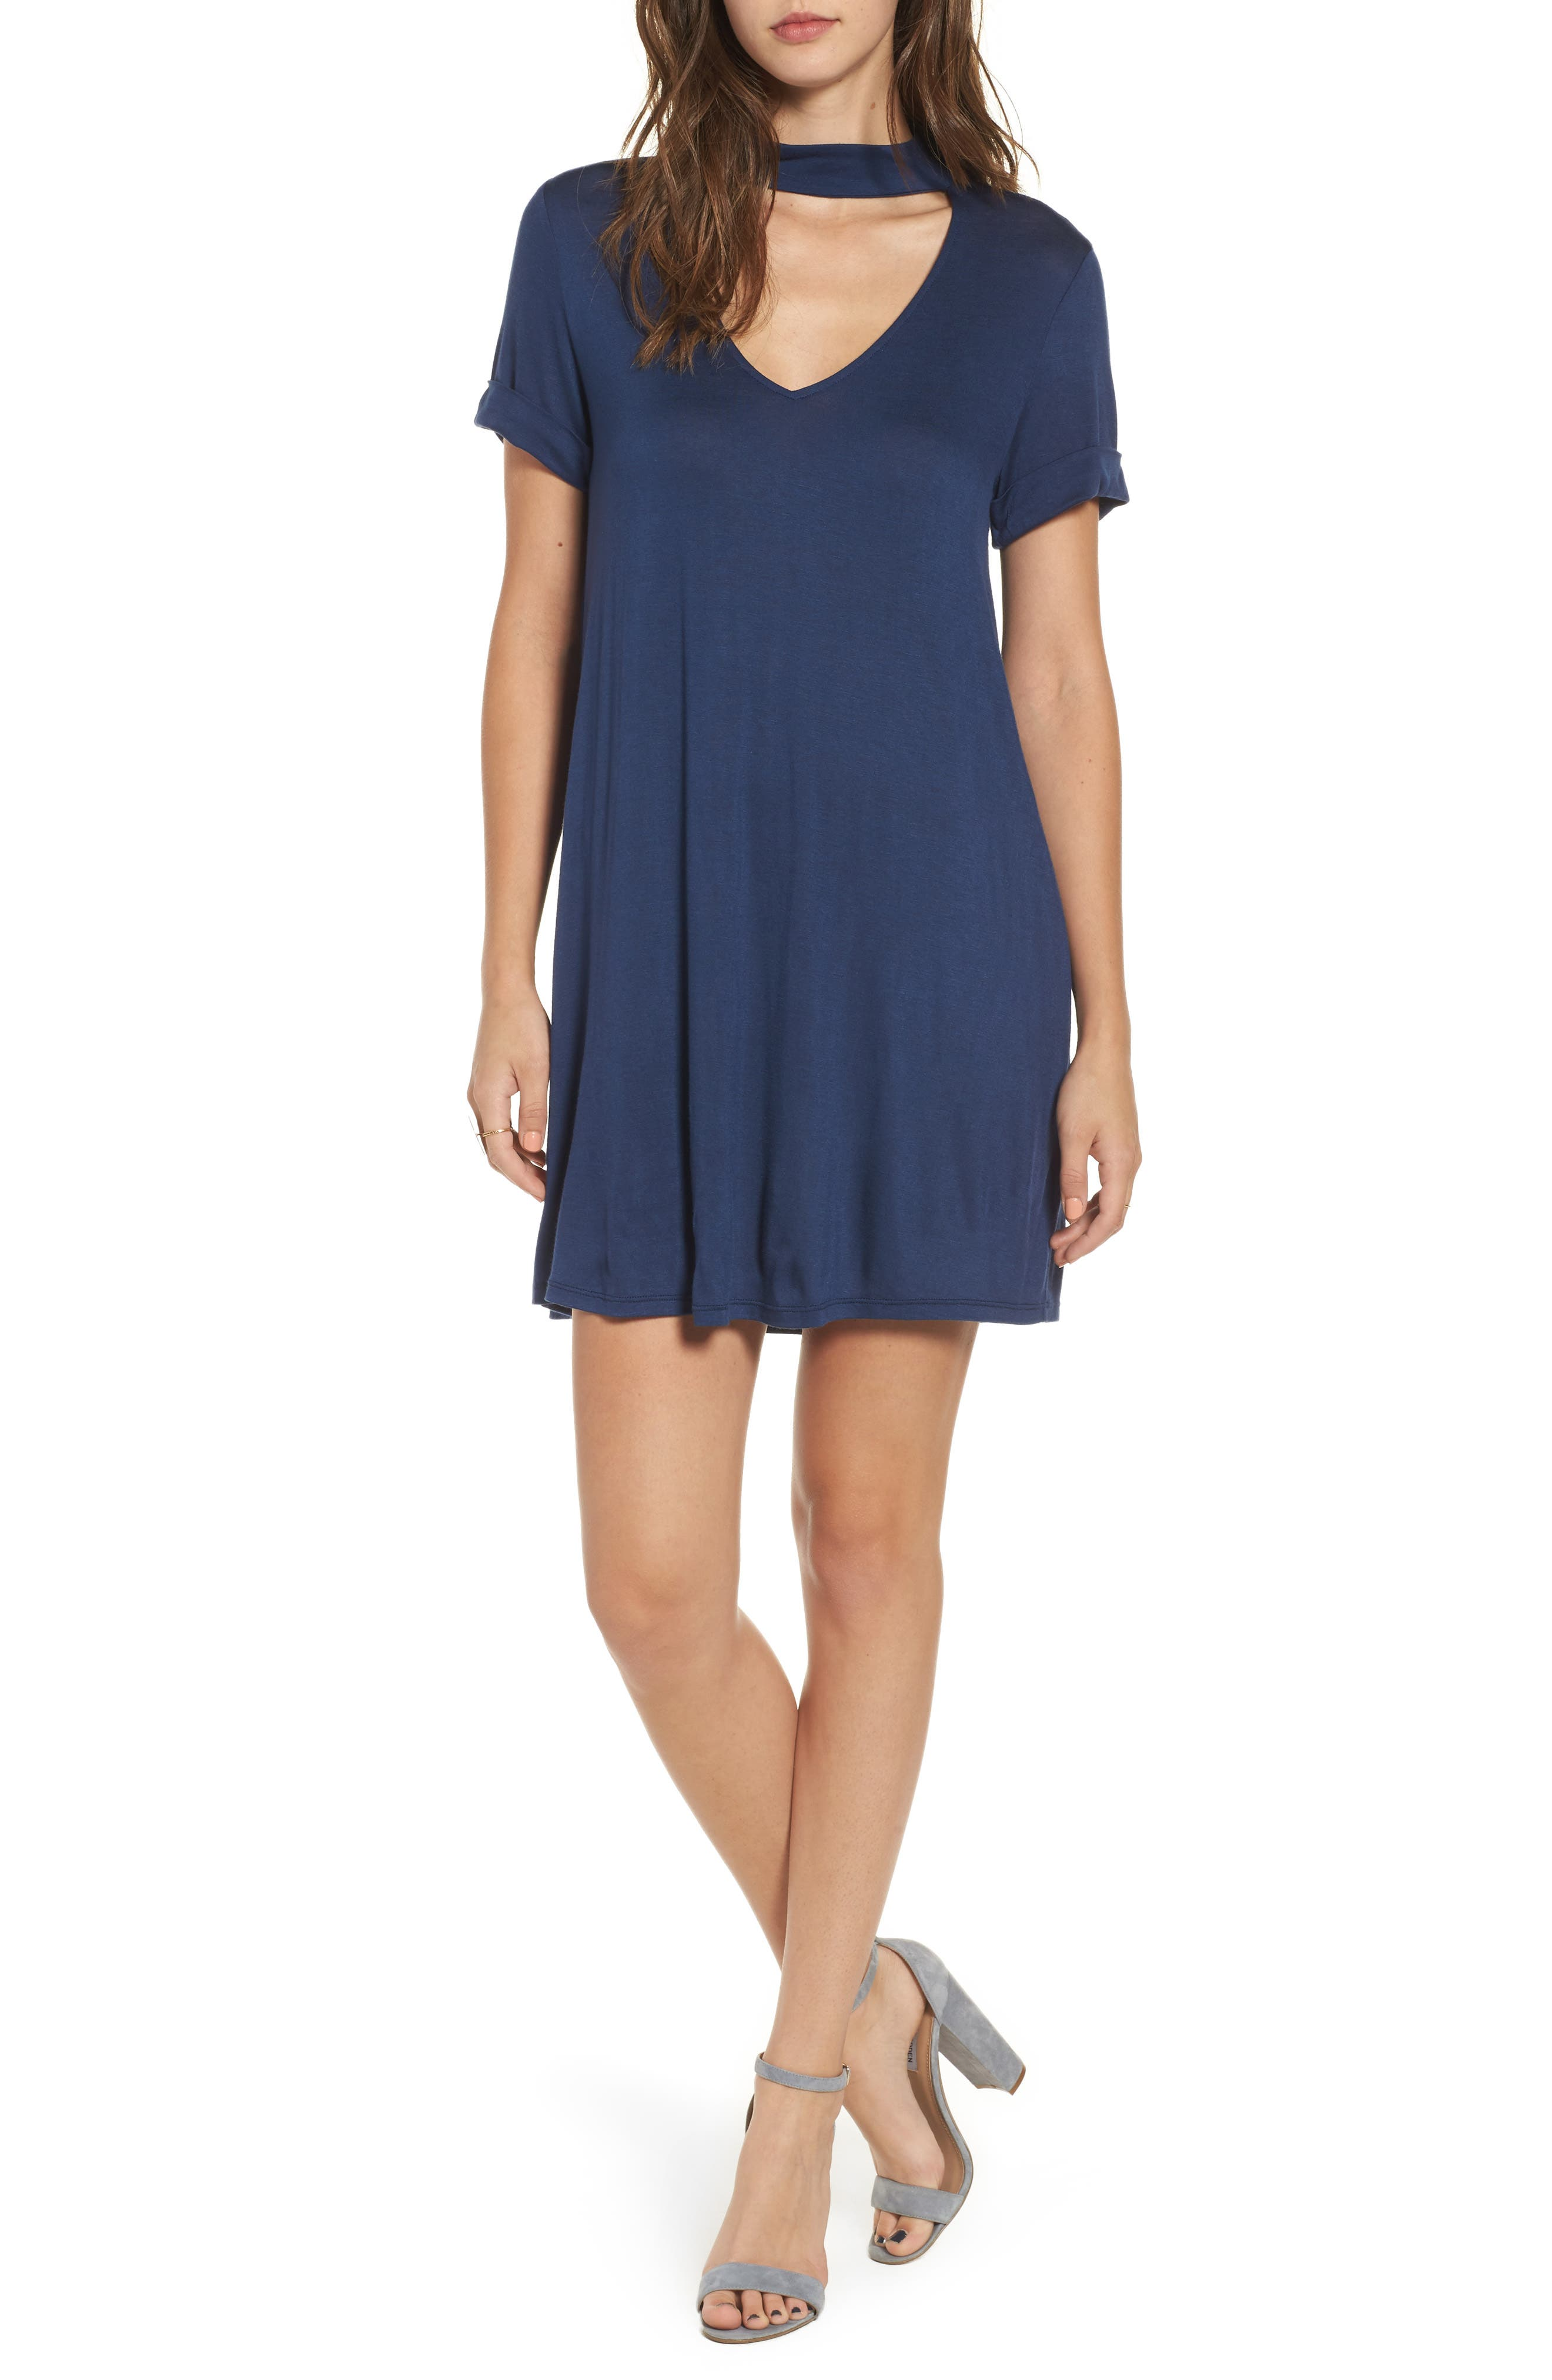 Everly Choker T-Shirt Dress